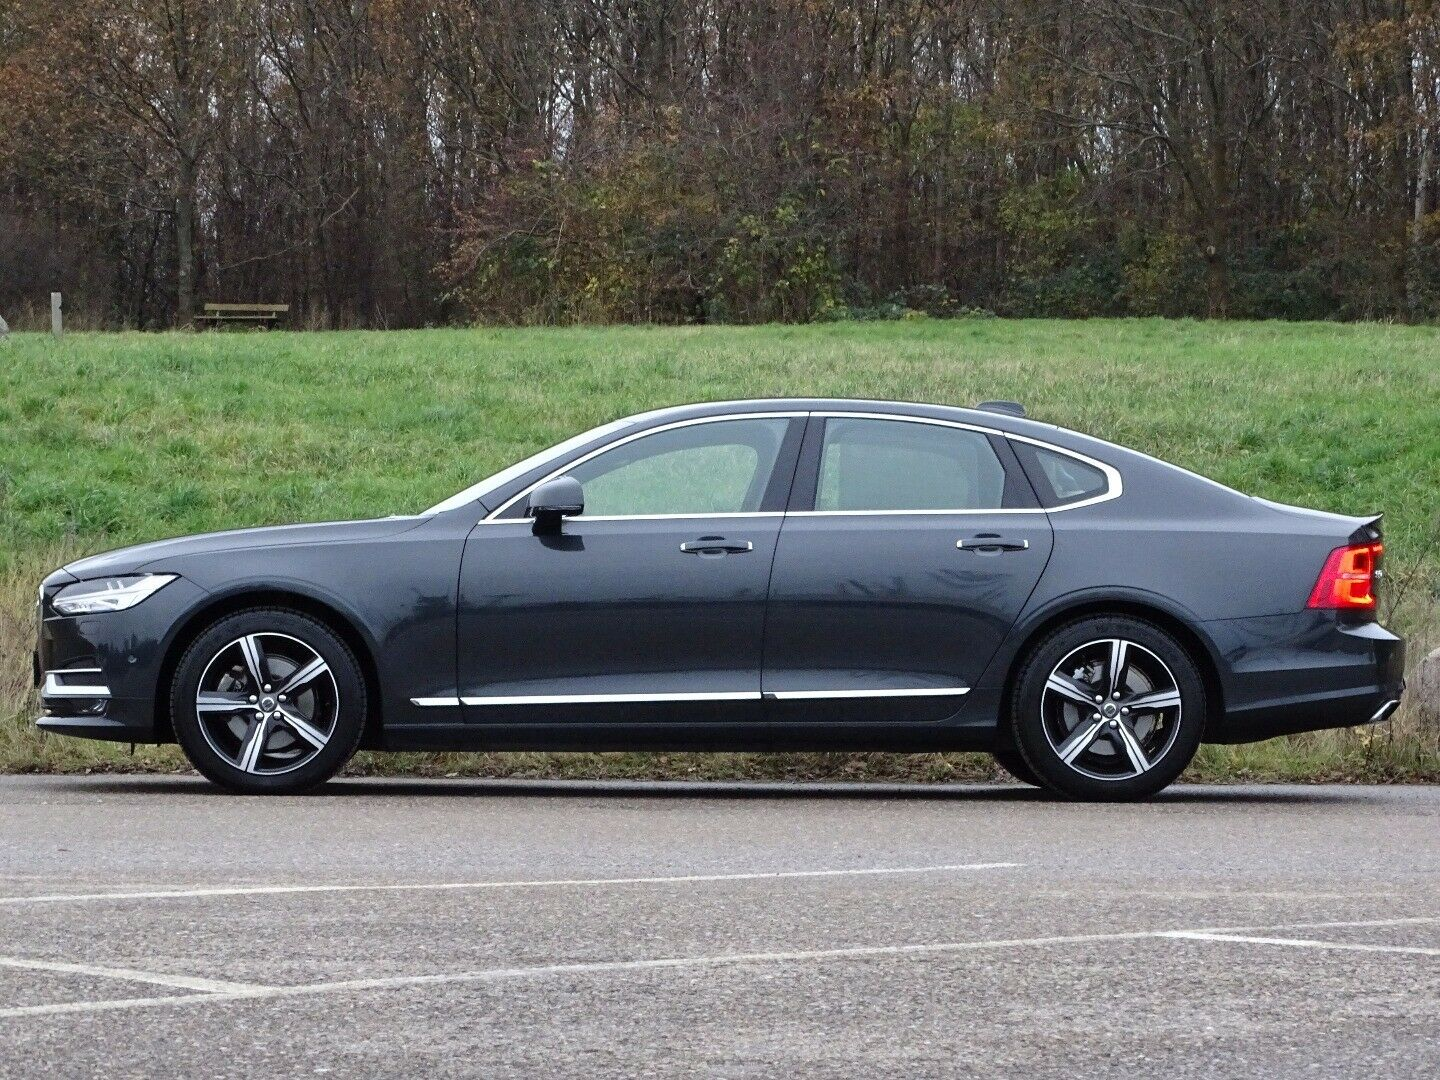 Volvo S90 2,0 T5 254 Inscription aut. - billede 3